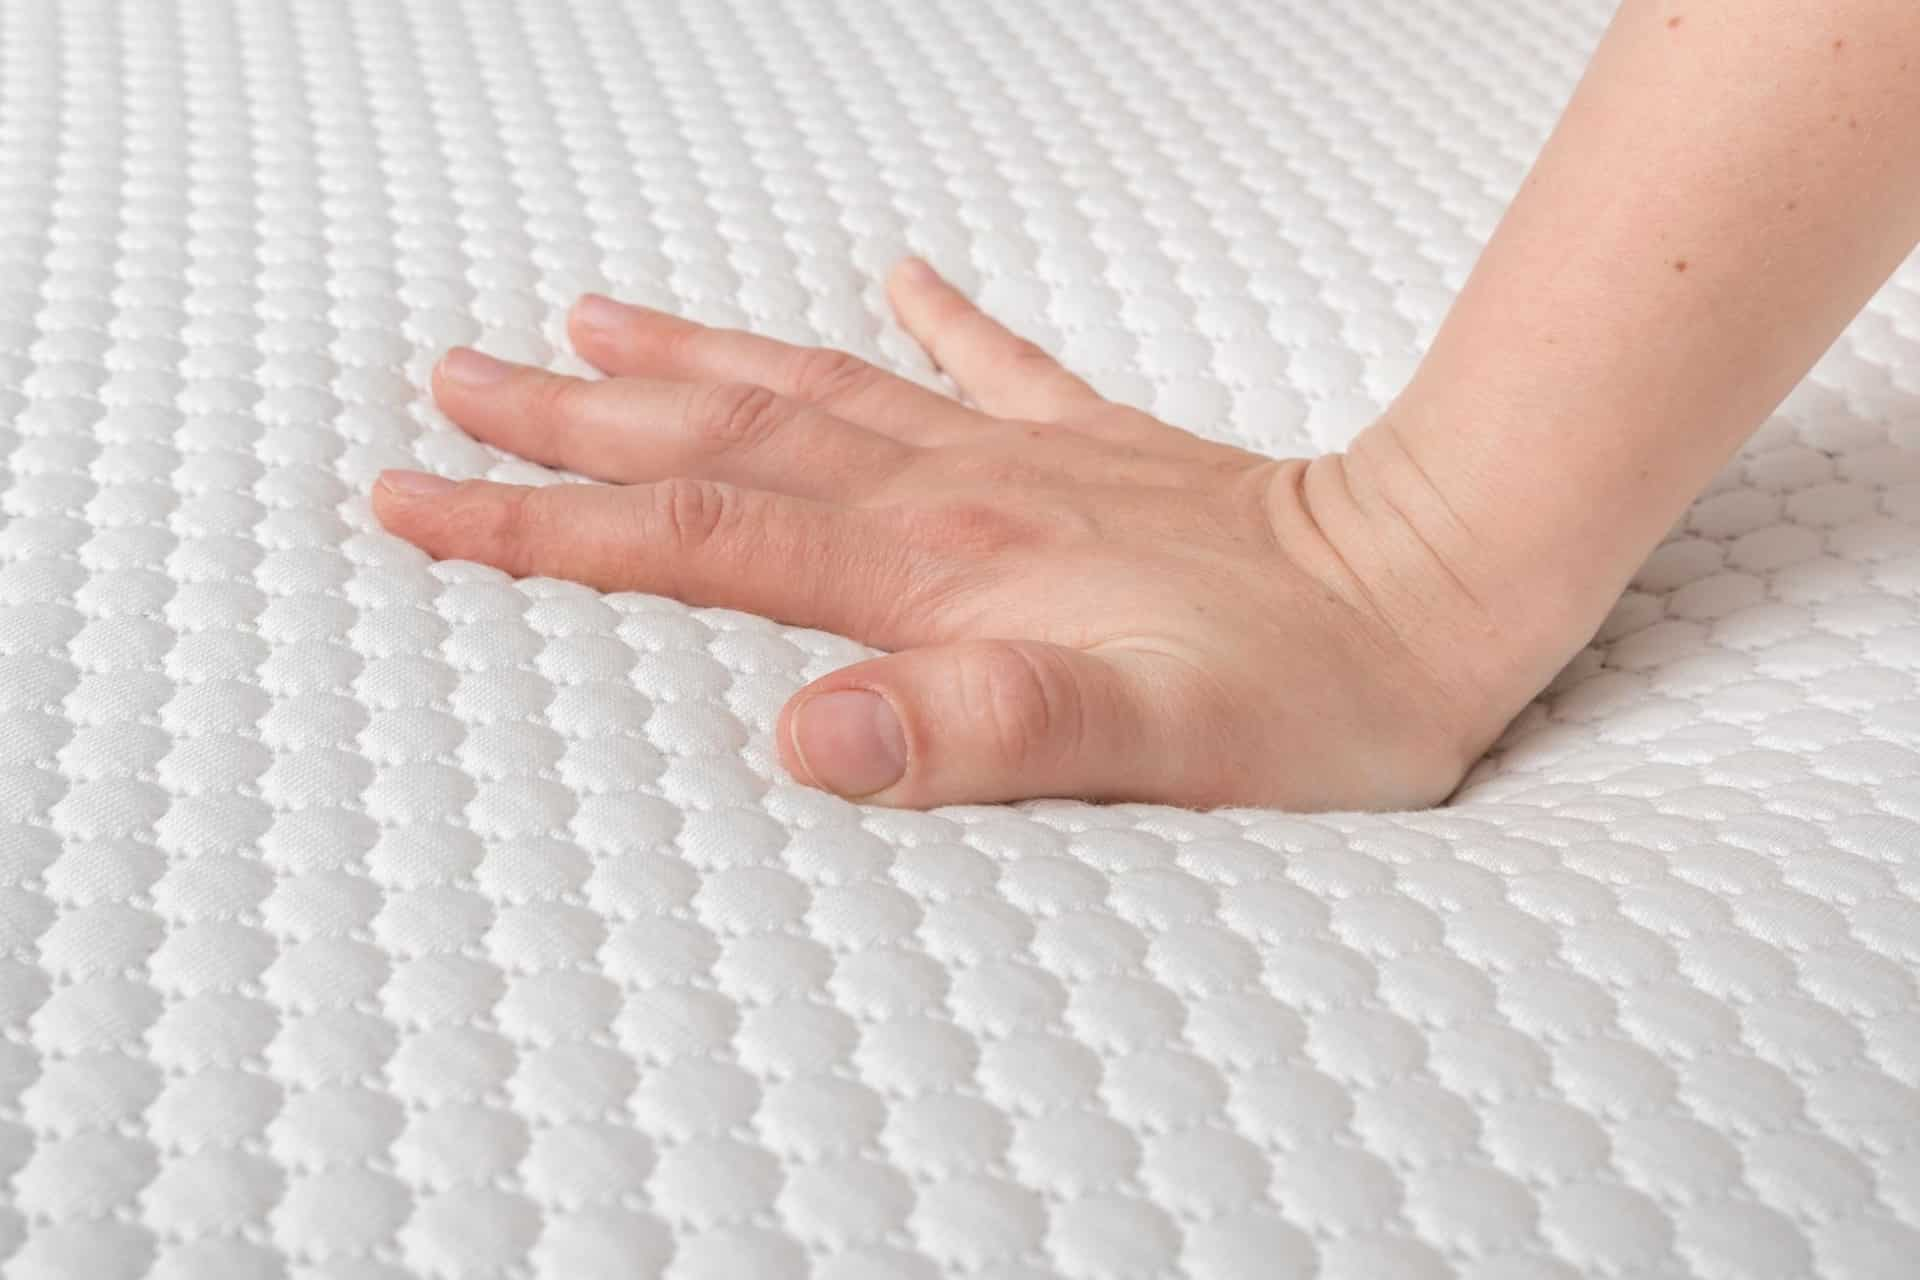 Hand of a woman testing a mattress.